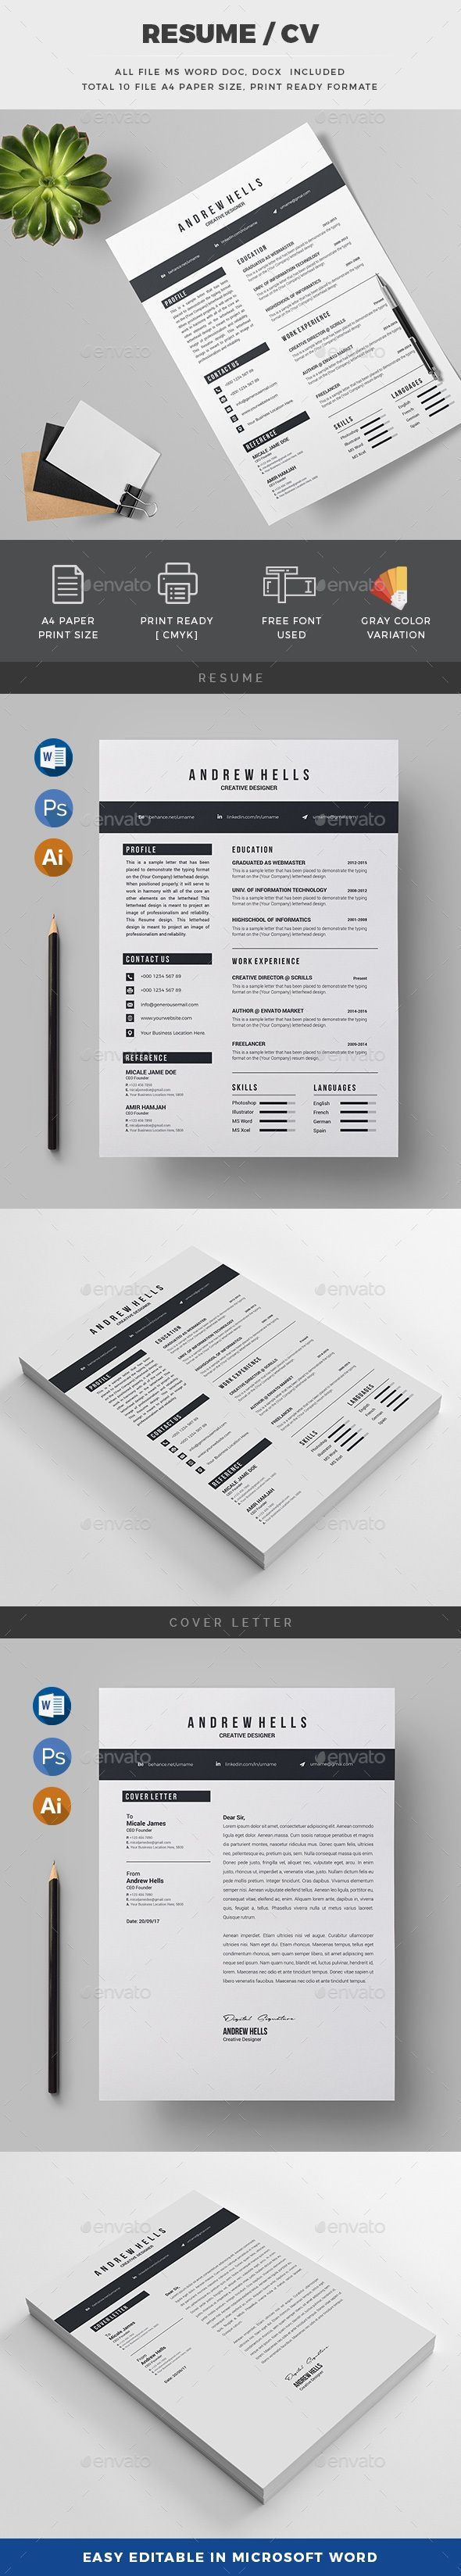 Resume 837 best Rsum images on Pinterest